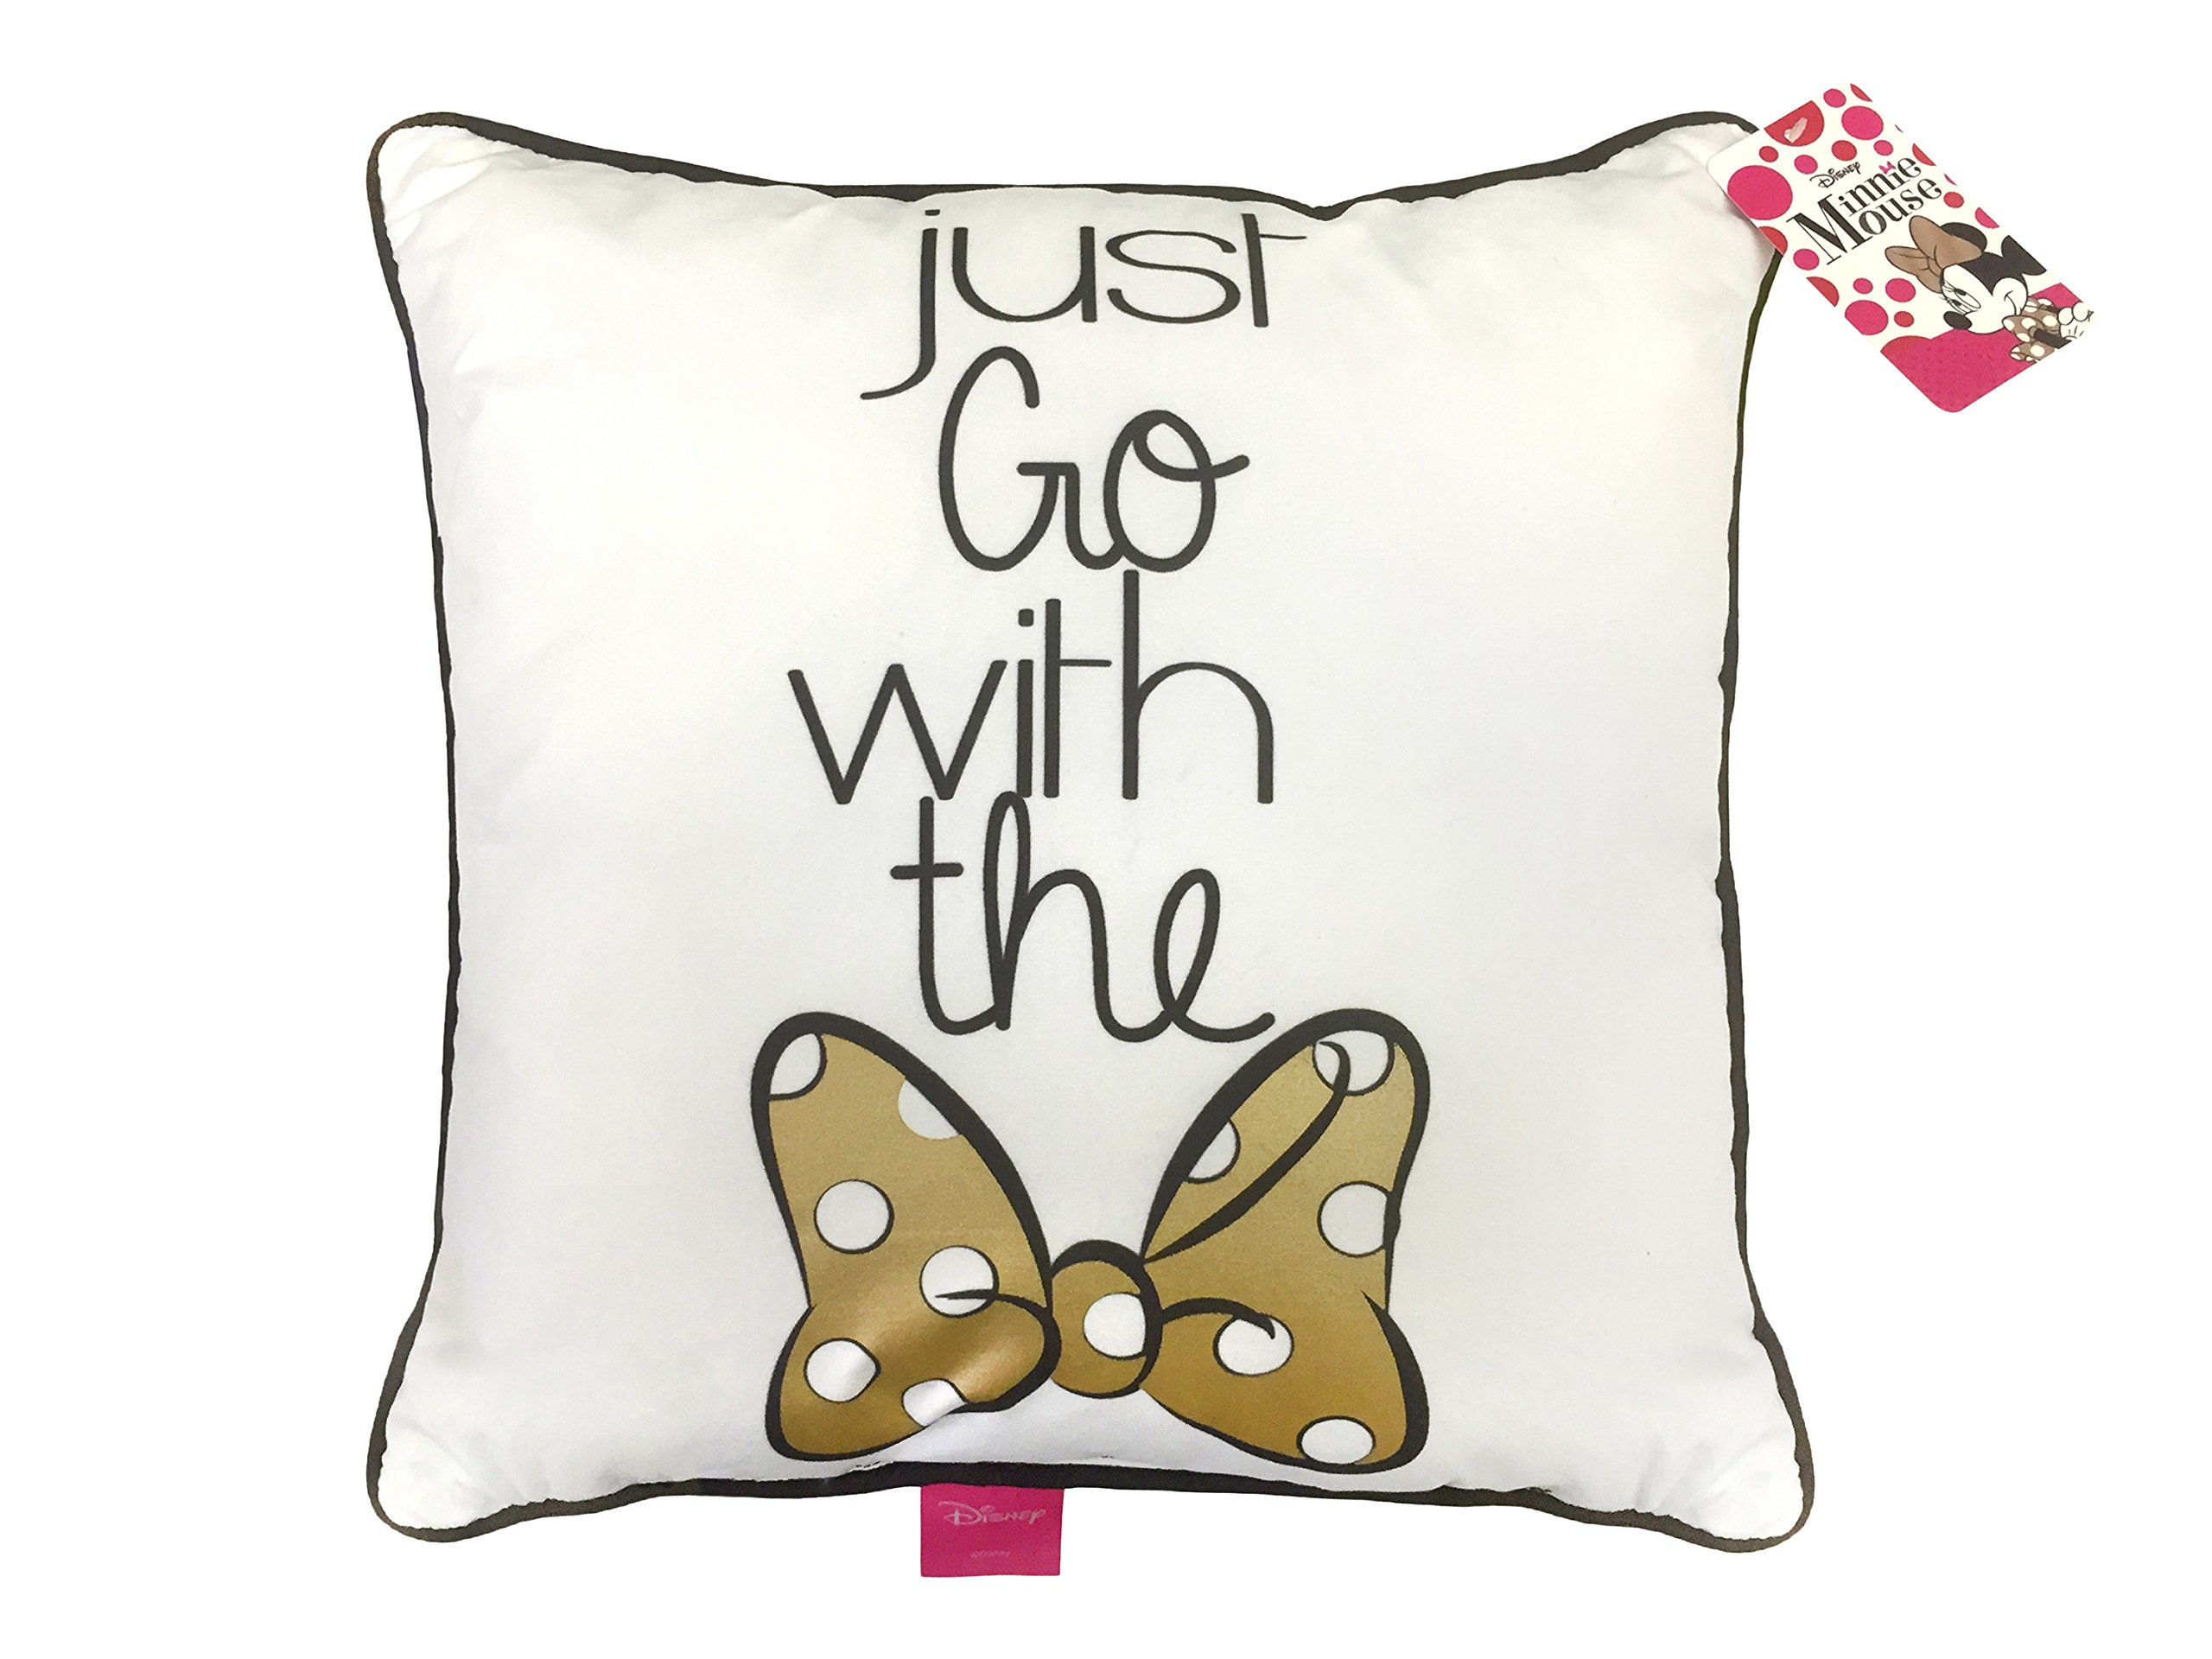 Disney Minnie Mouse Just Go with The Bow Plush Decorative Throw Pillow